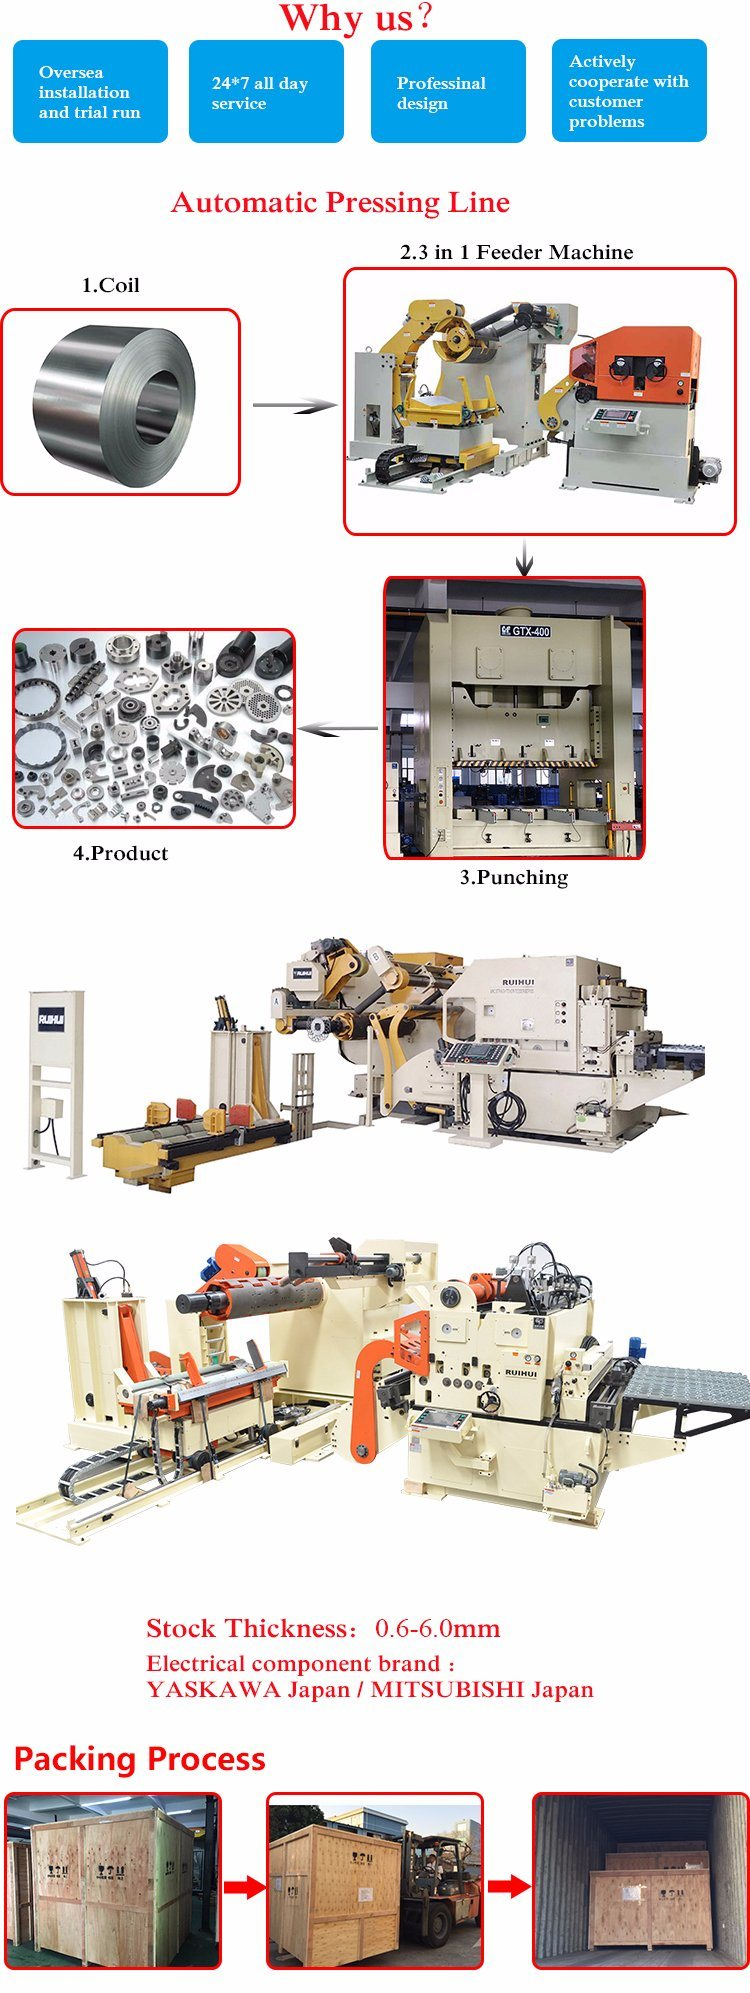 Stamping Automation, Heavy Material Frame Pneumatic Pressing Arm